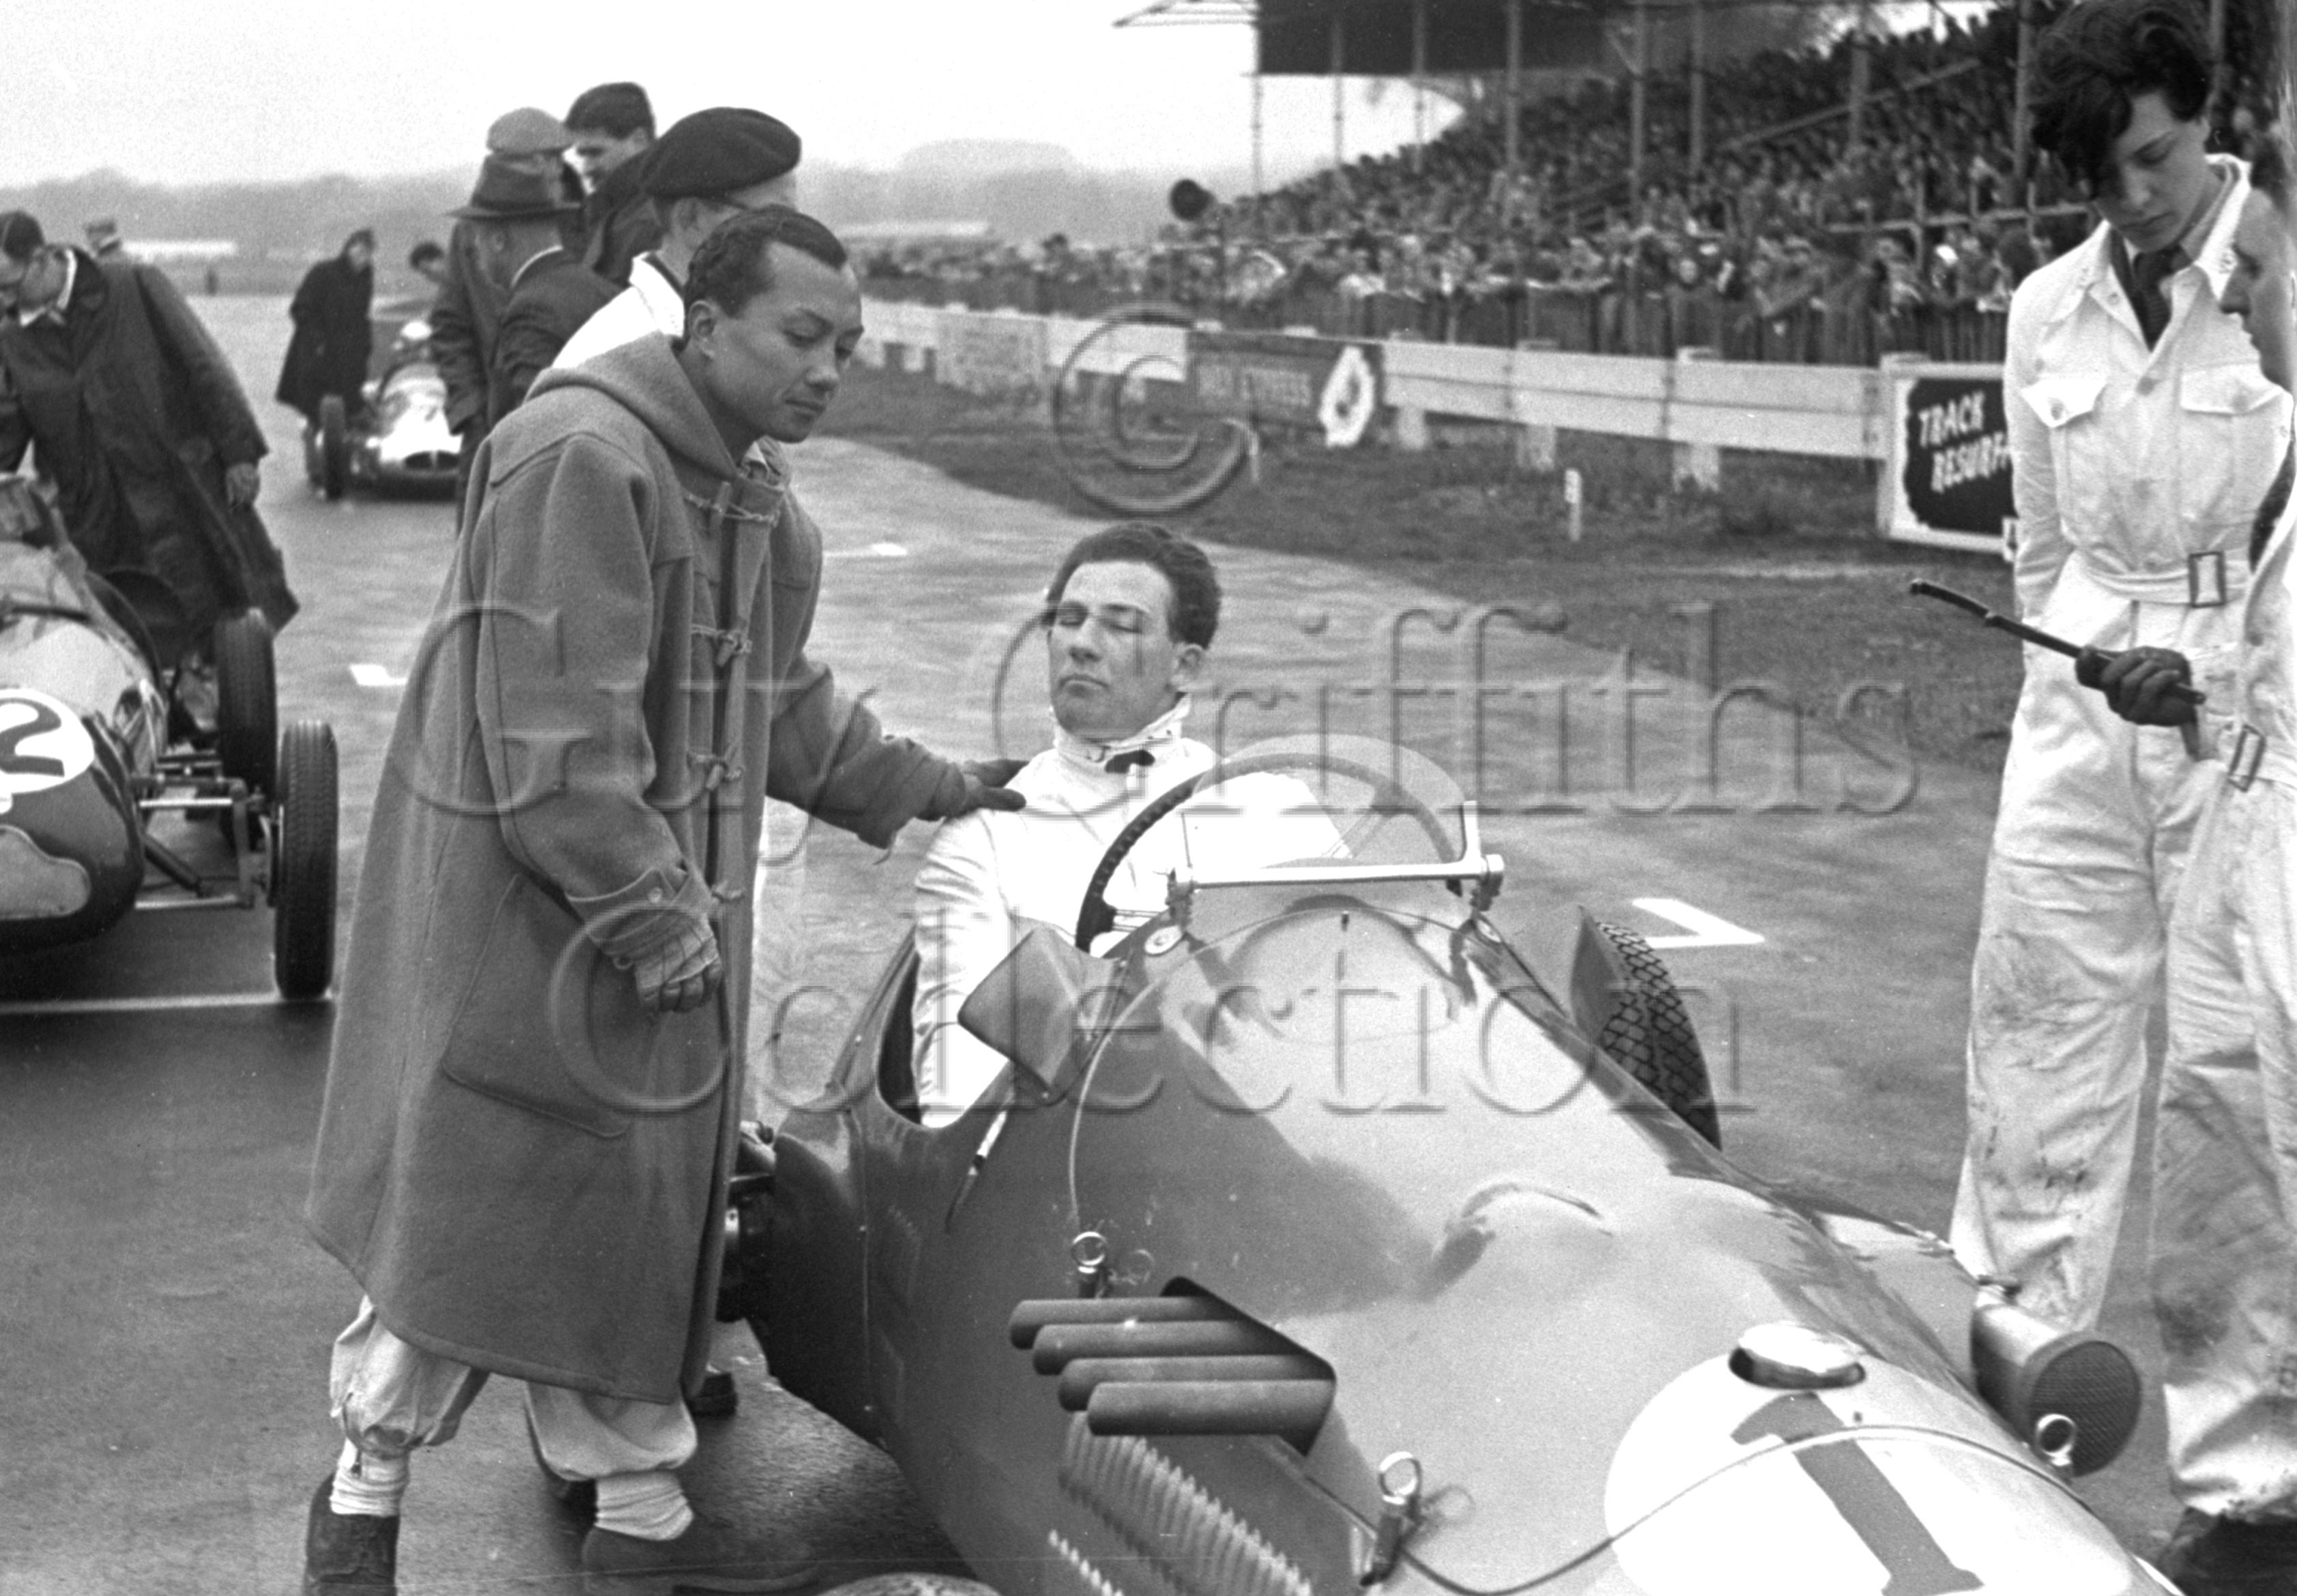 39-186–S-Moss–HWM–Goodwood–26-03-1951.jpg - The Guy Griffiths Collection